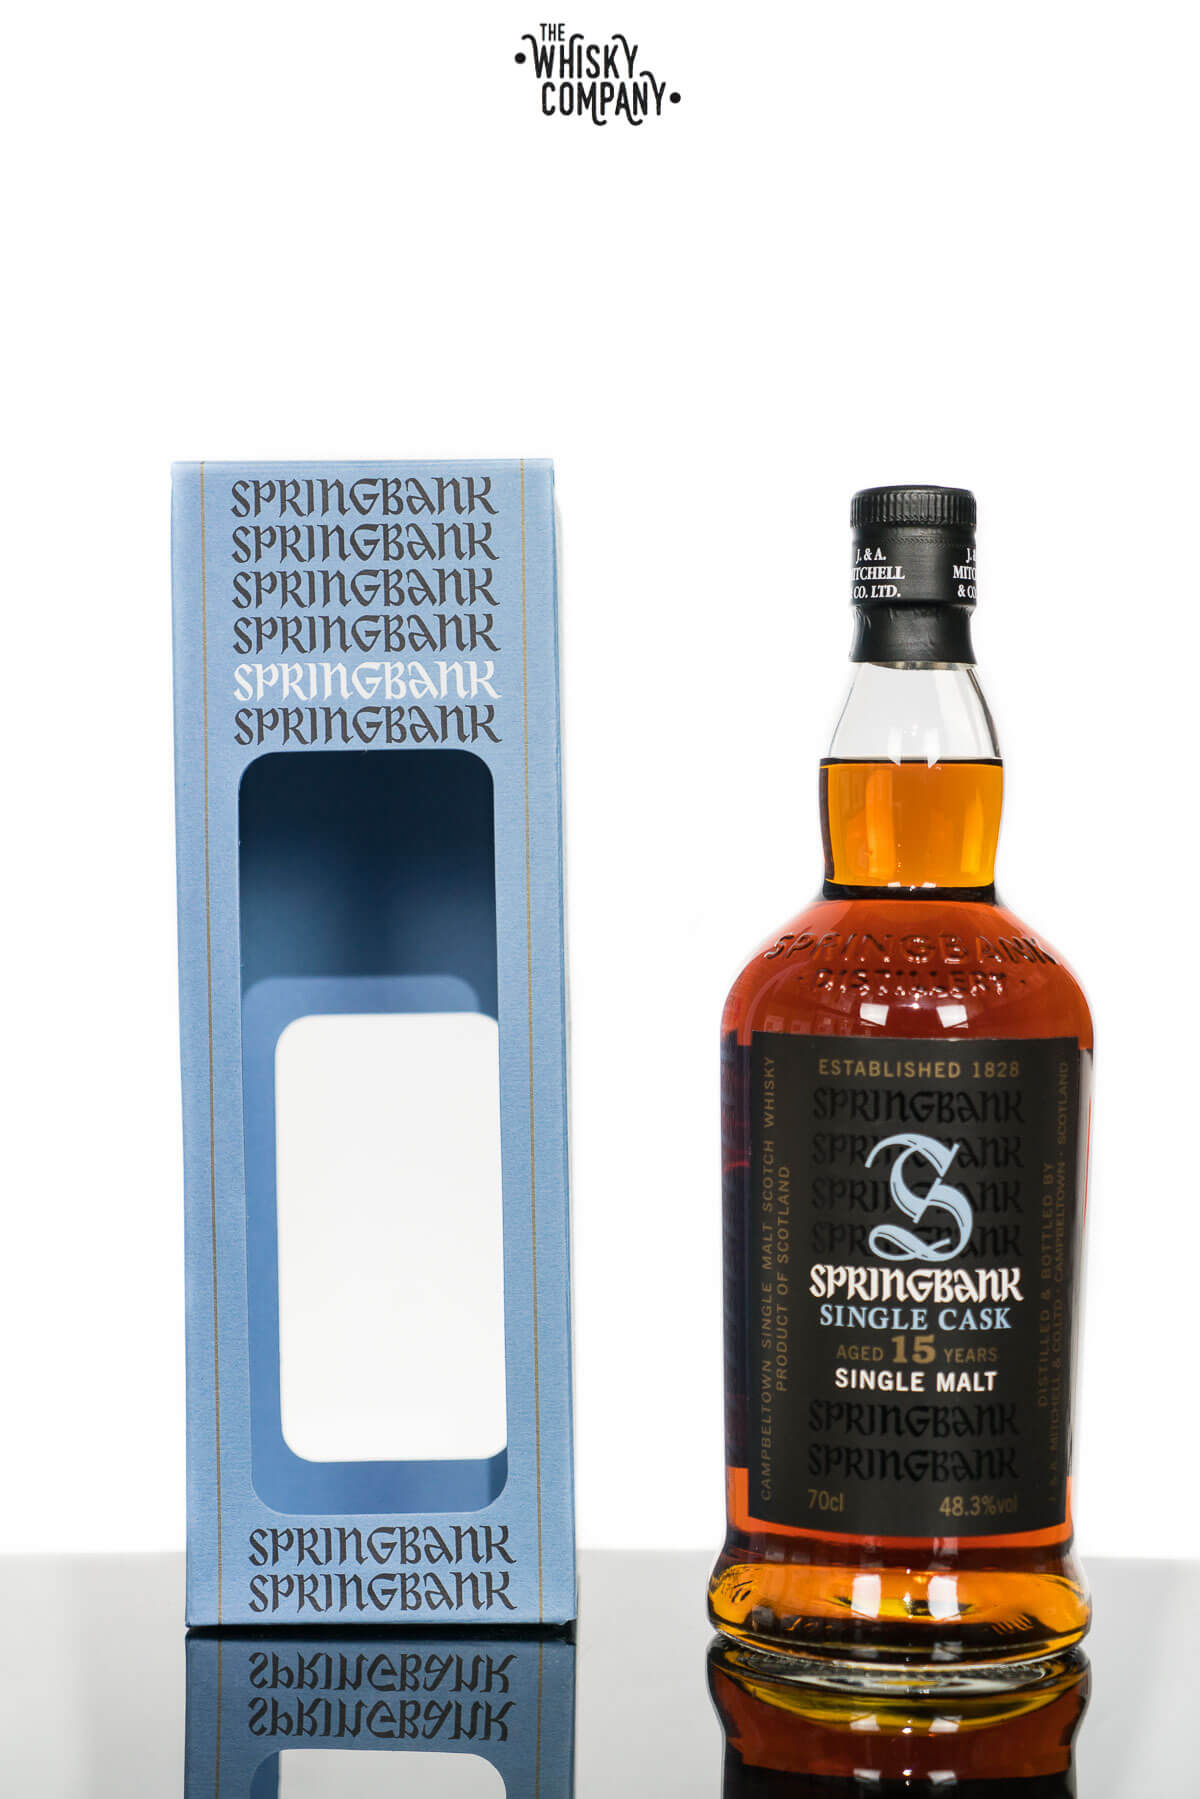 Springbank 15 Years Old Single Cask Campbeltown Single Malt Scotch Whisky (700ml)